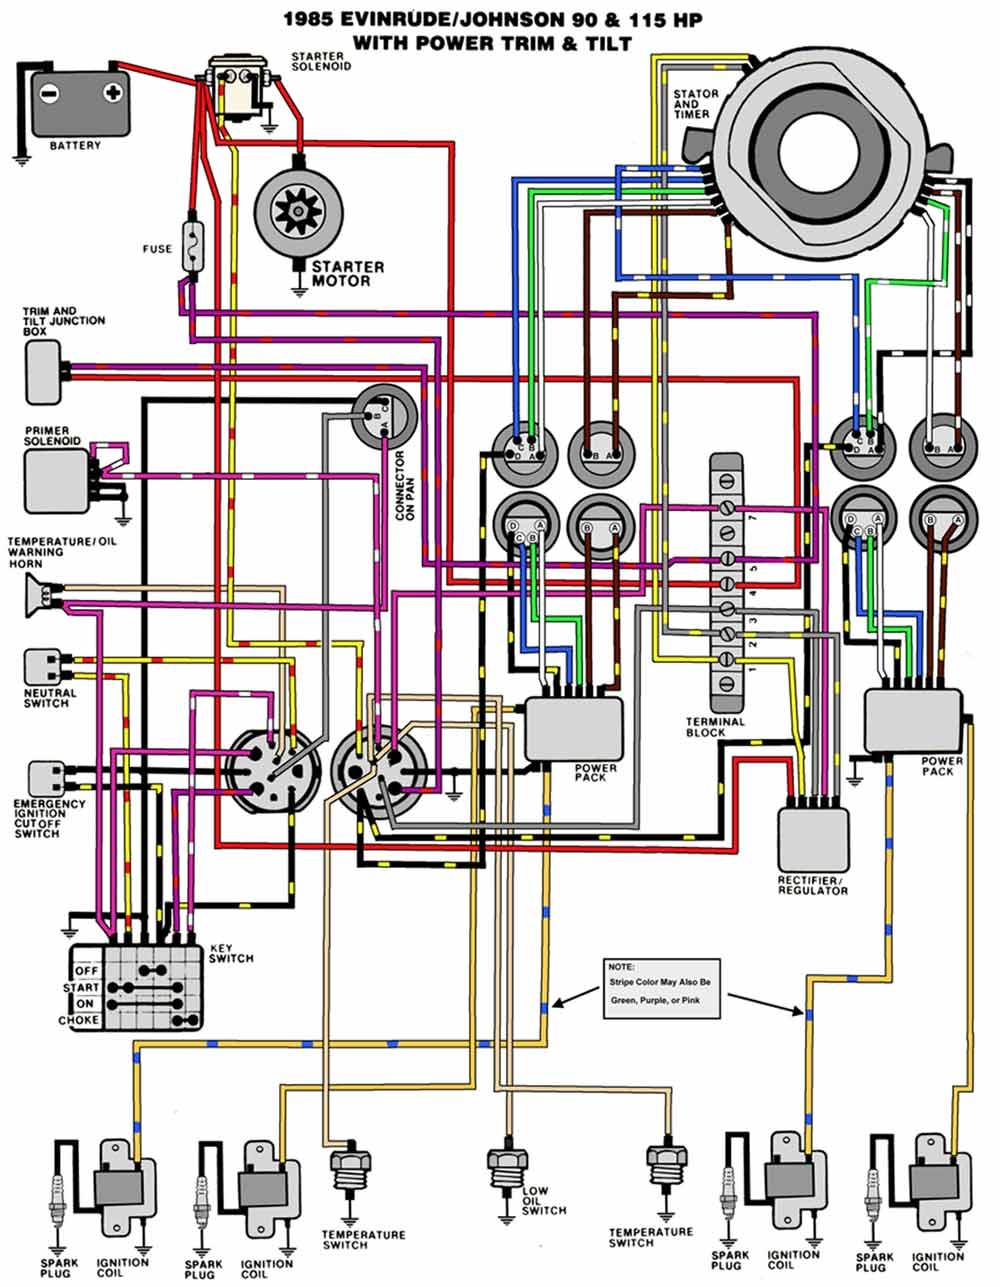 1988 Diagram Wiring Evinrude Be120tlcca - talk about wiring ... on